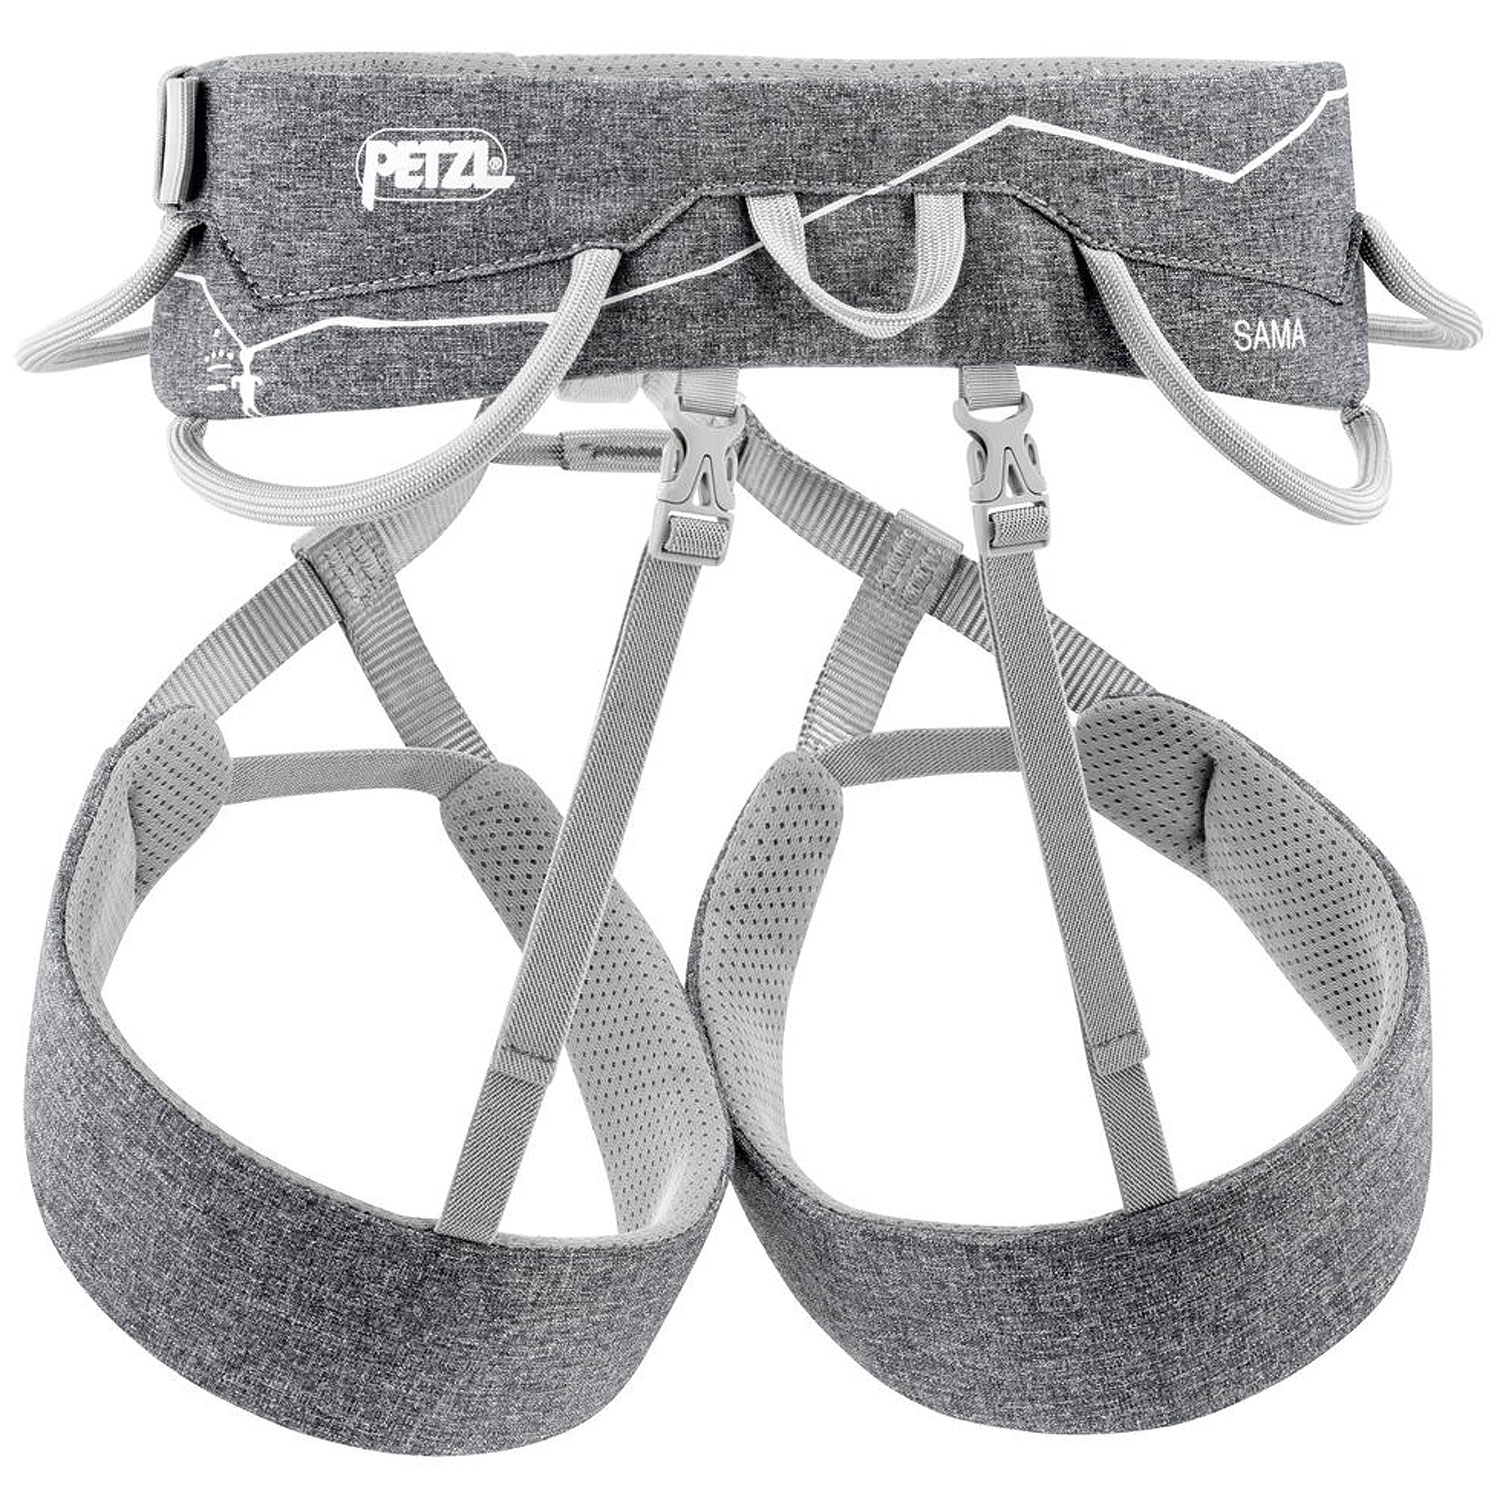 Petzl-Men-039-s-Sama-Rock-Climbing-Harness thumbnail 2